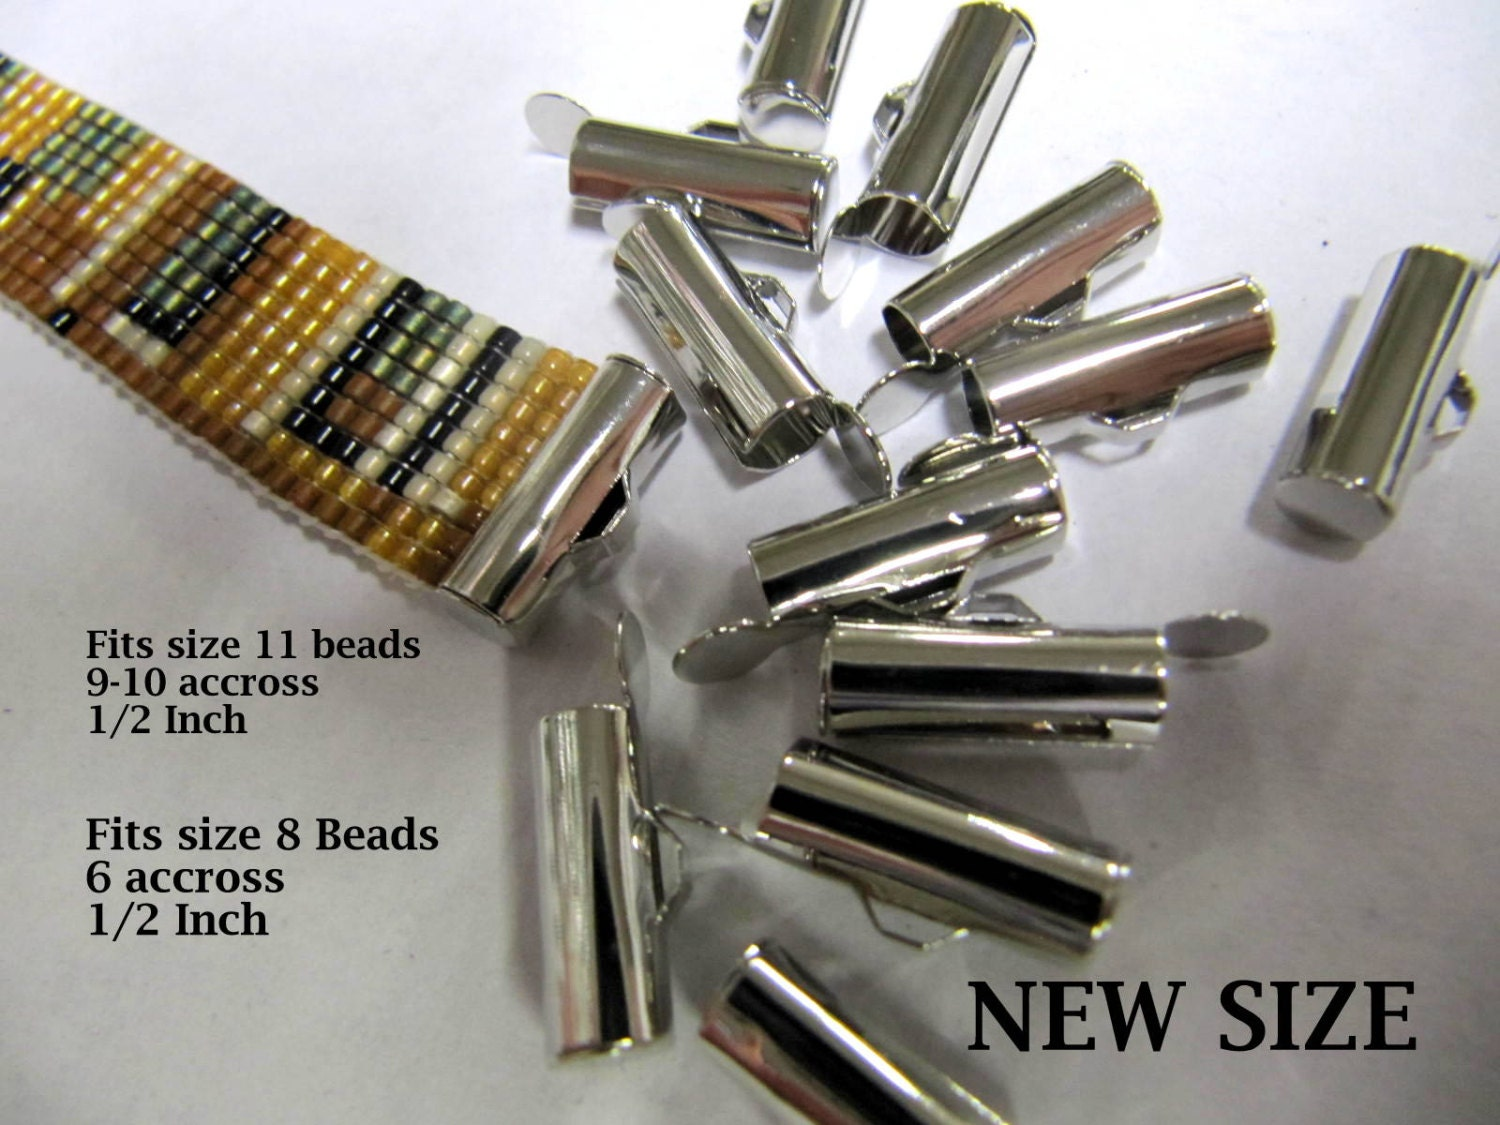 End Caps Slider Clasps, 1/2 Inch Silver, Loom Bead Patterns, Loom Findings, Silver Color, 12 Pack, Look Is Clean and Neat